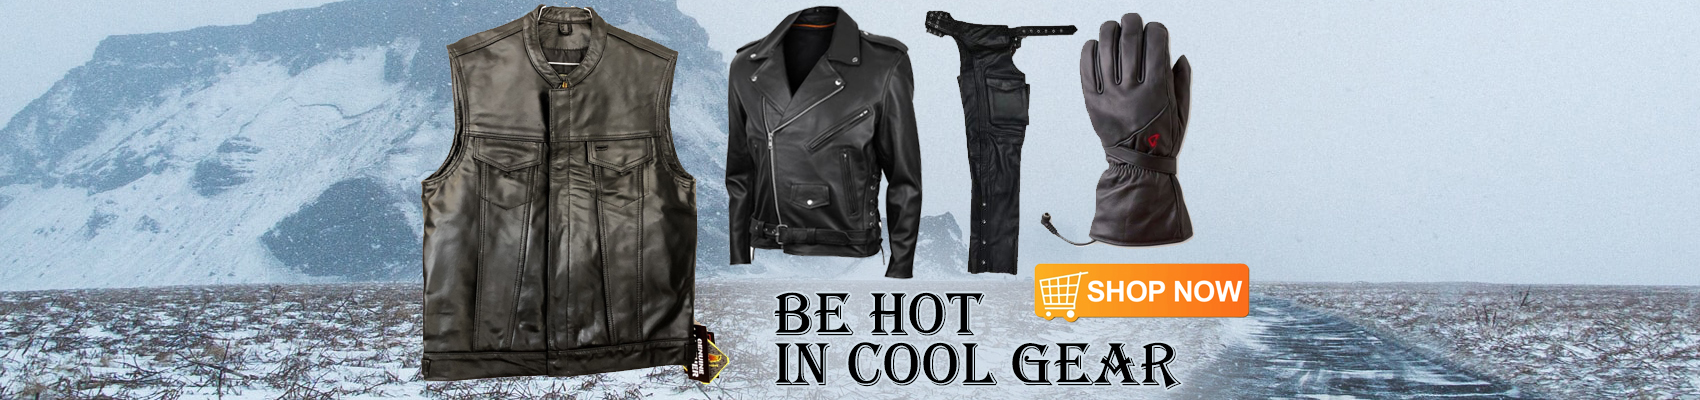 Cold Weather Motorcycle Riding Gear